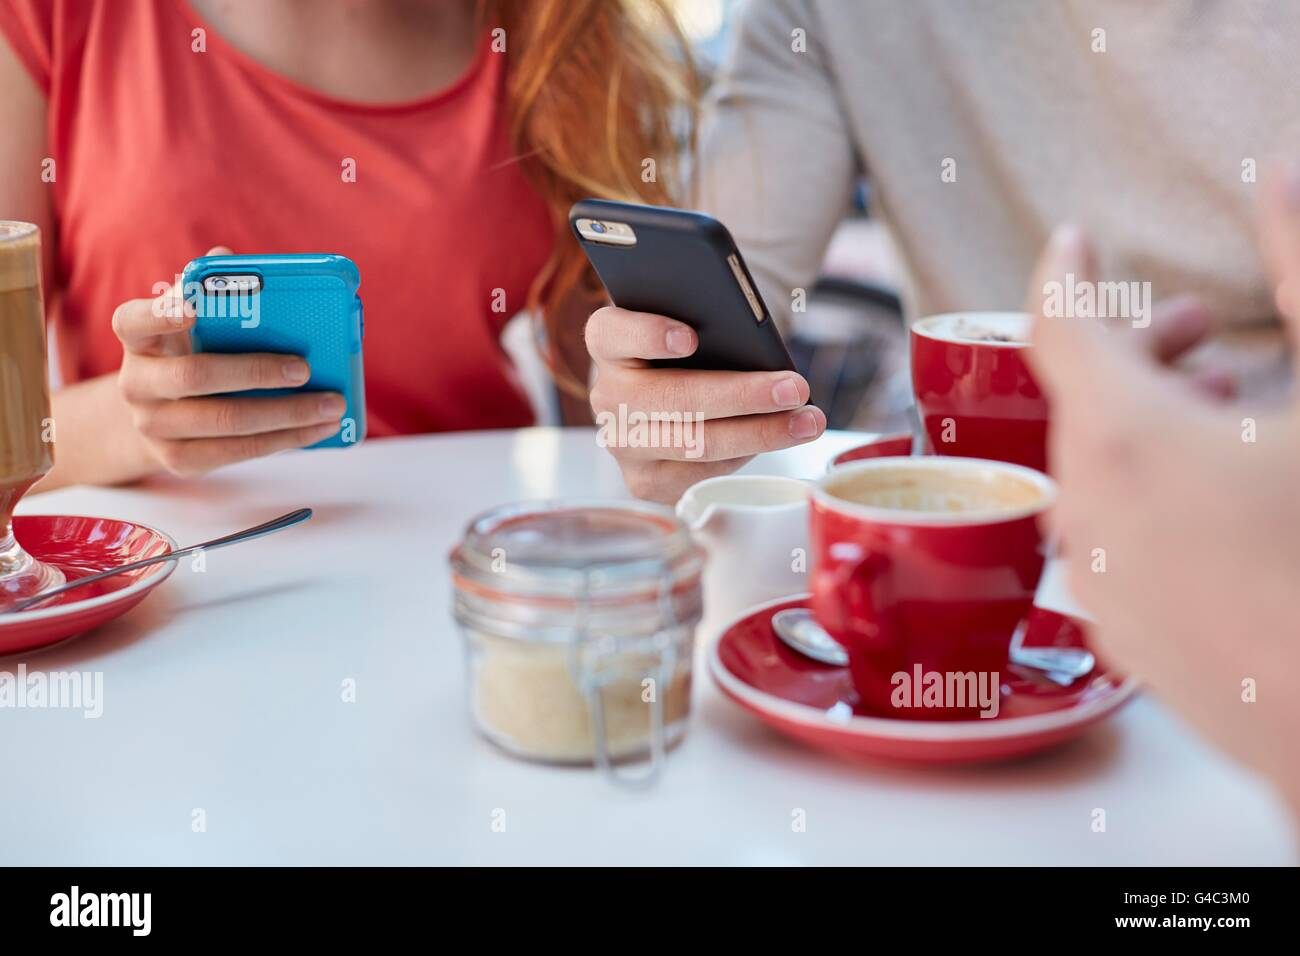 MODEL RELEASED. Young people in cafe using smartphones. - Stock Image